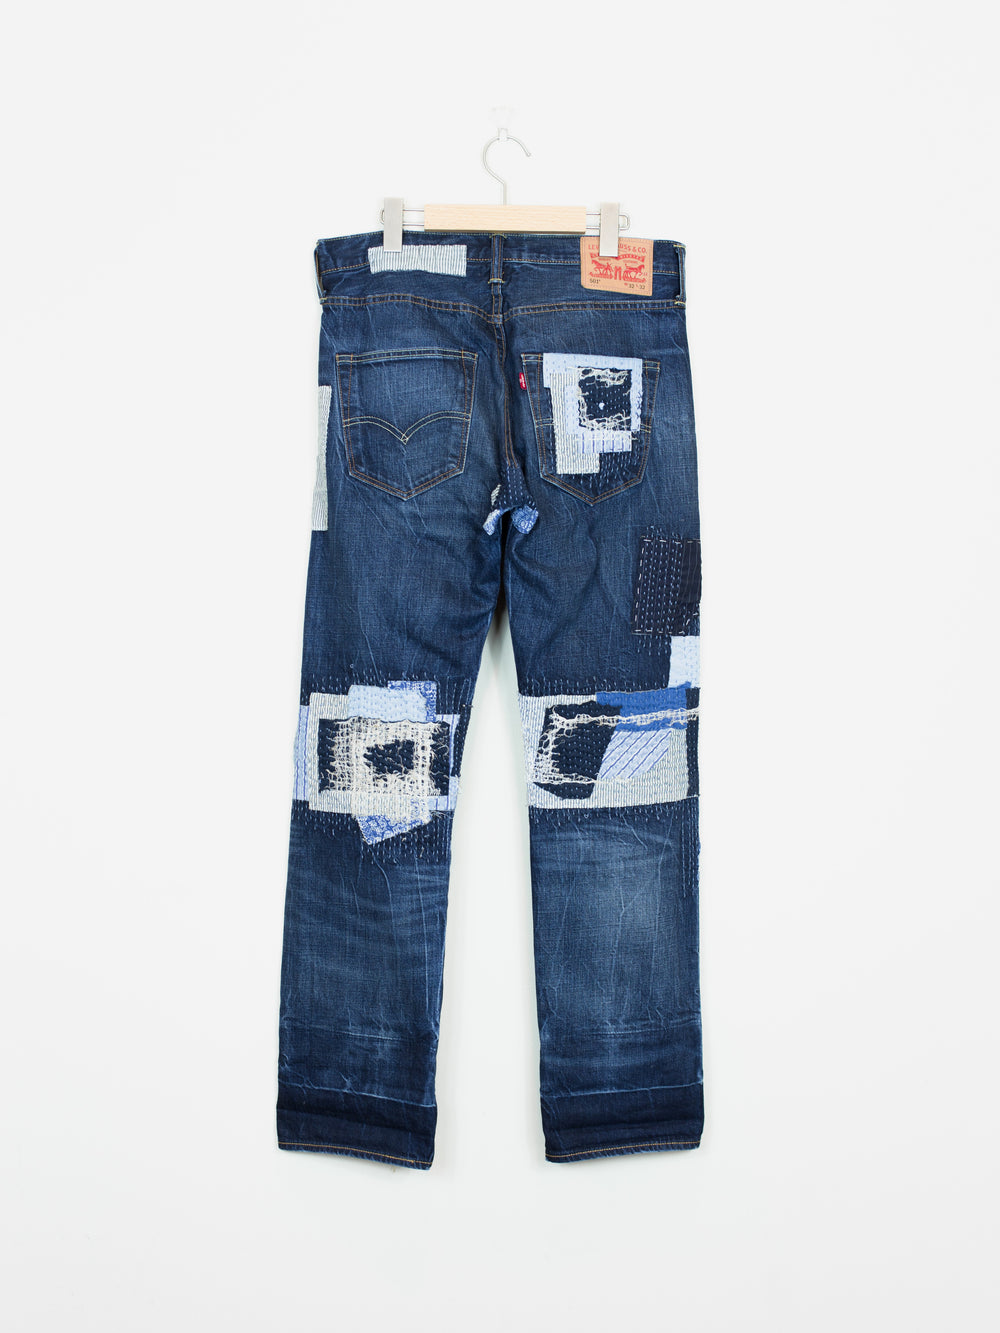 Levi's Japan-Exclusive Sashiko Patchwork 501 Jeans